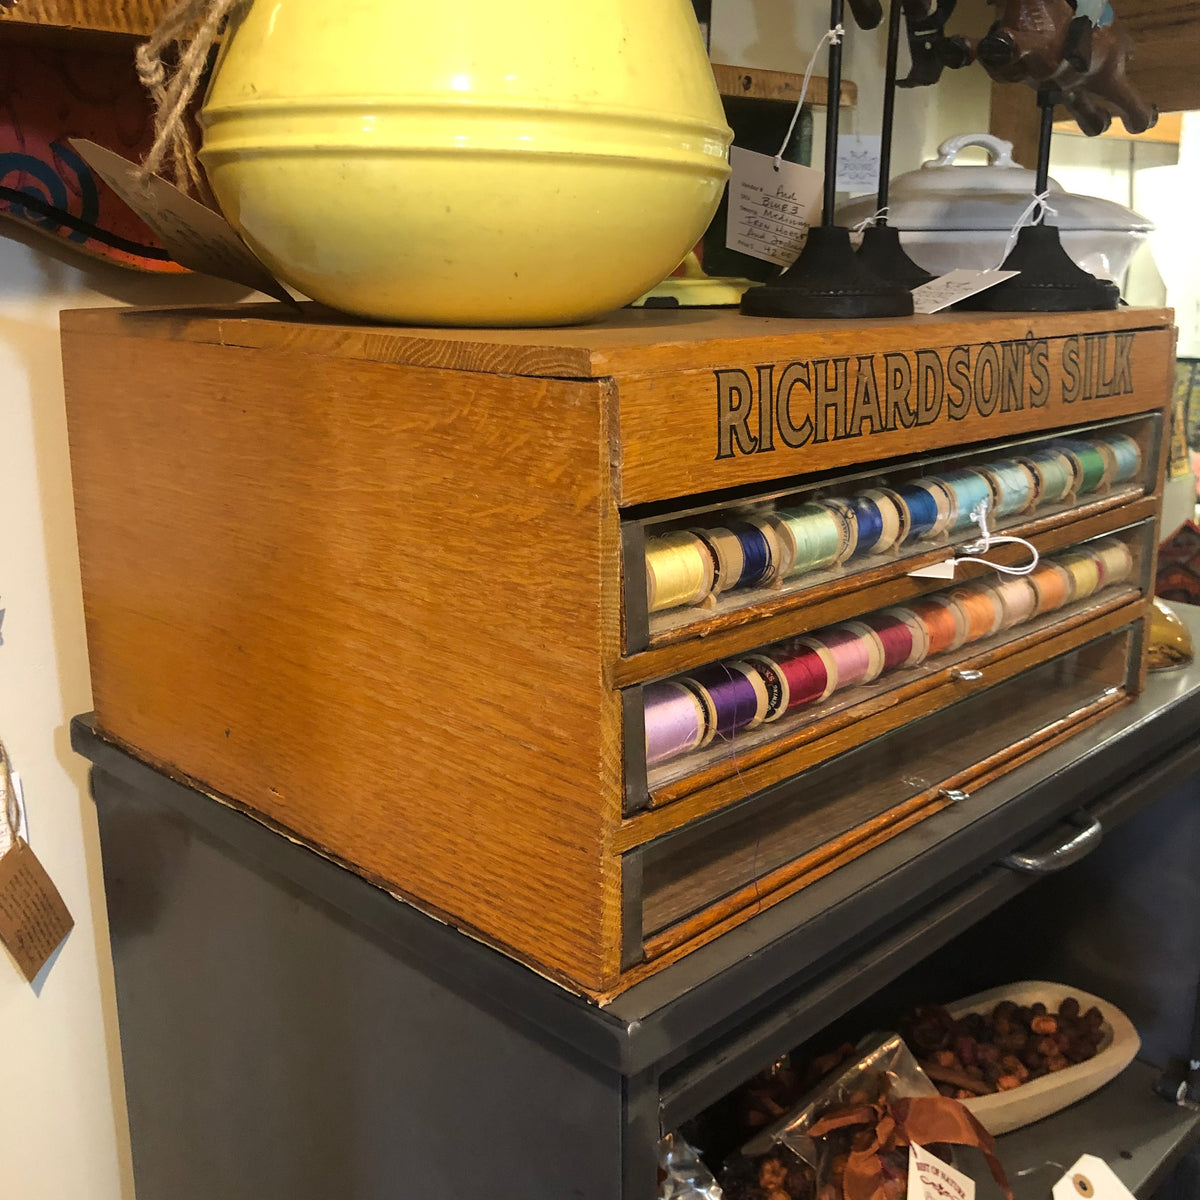 Richardson's Silk Spool Display Cabinet